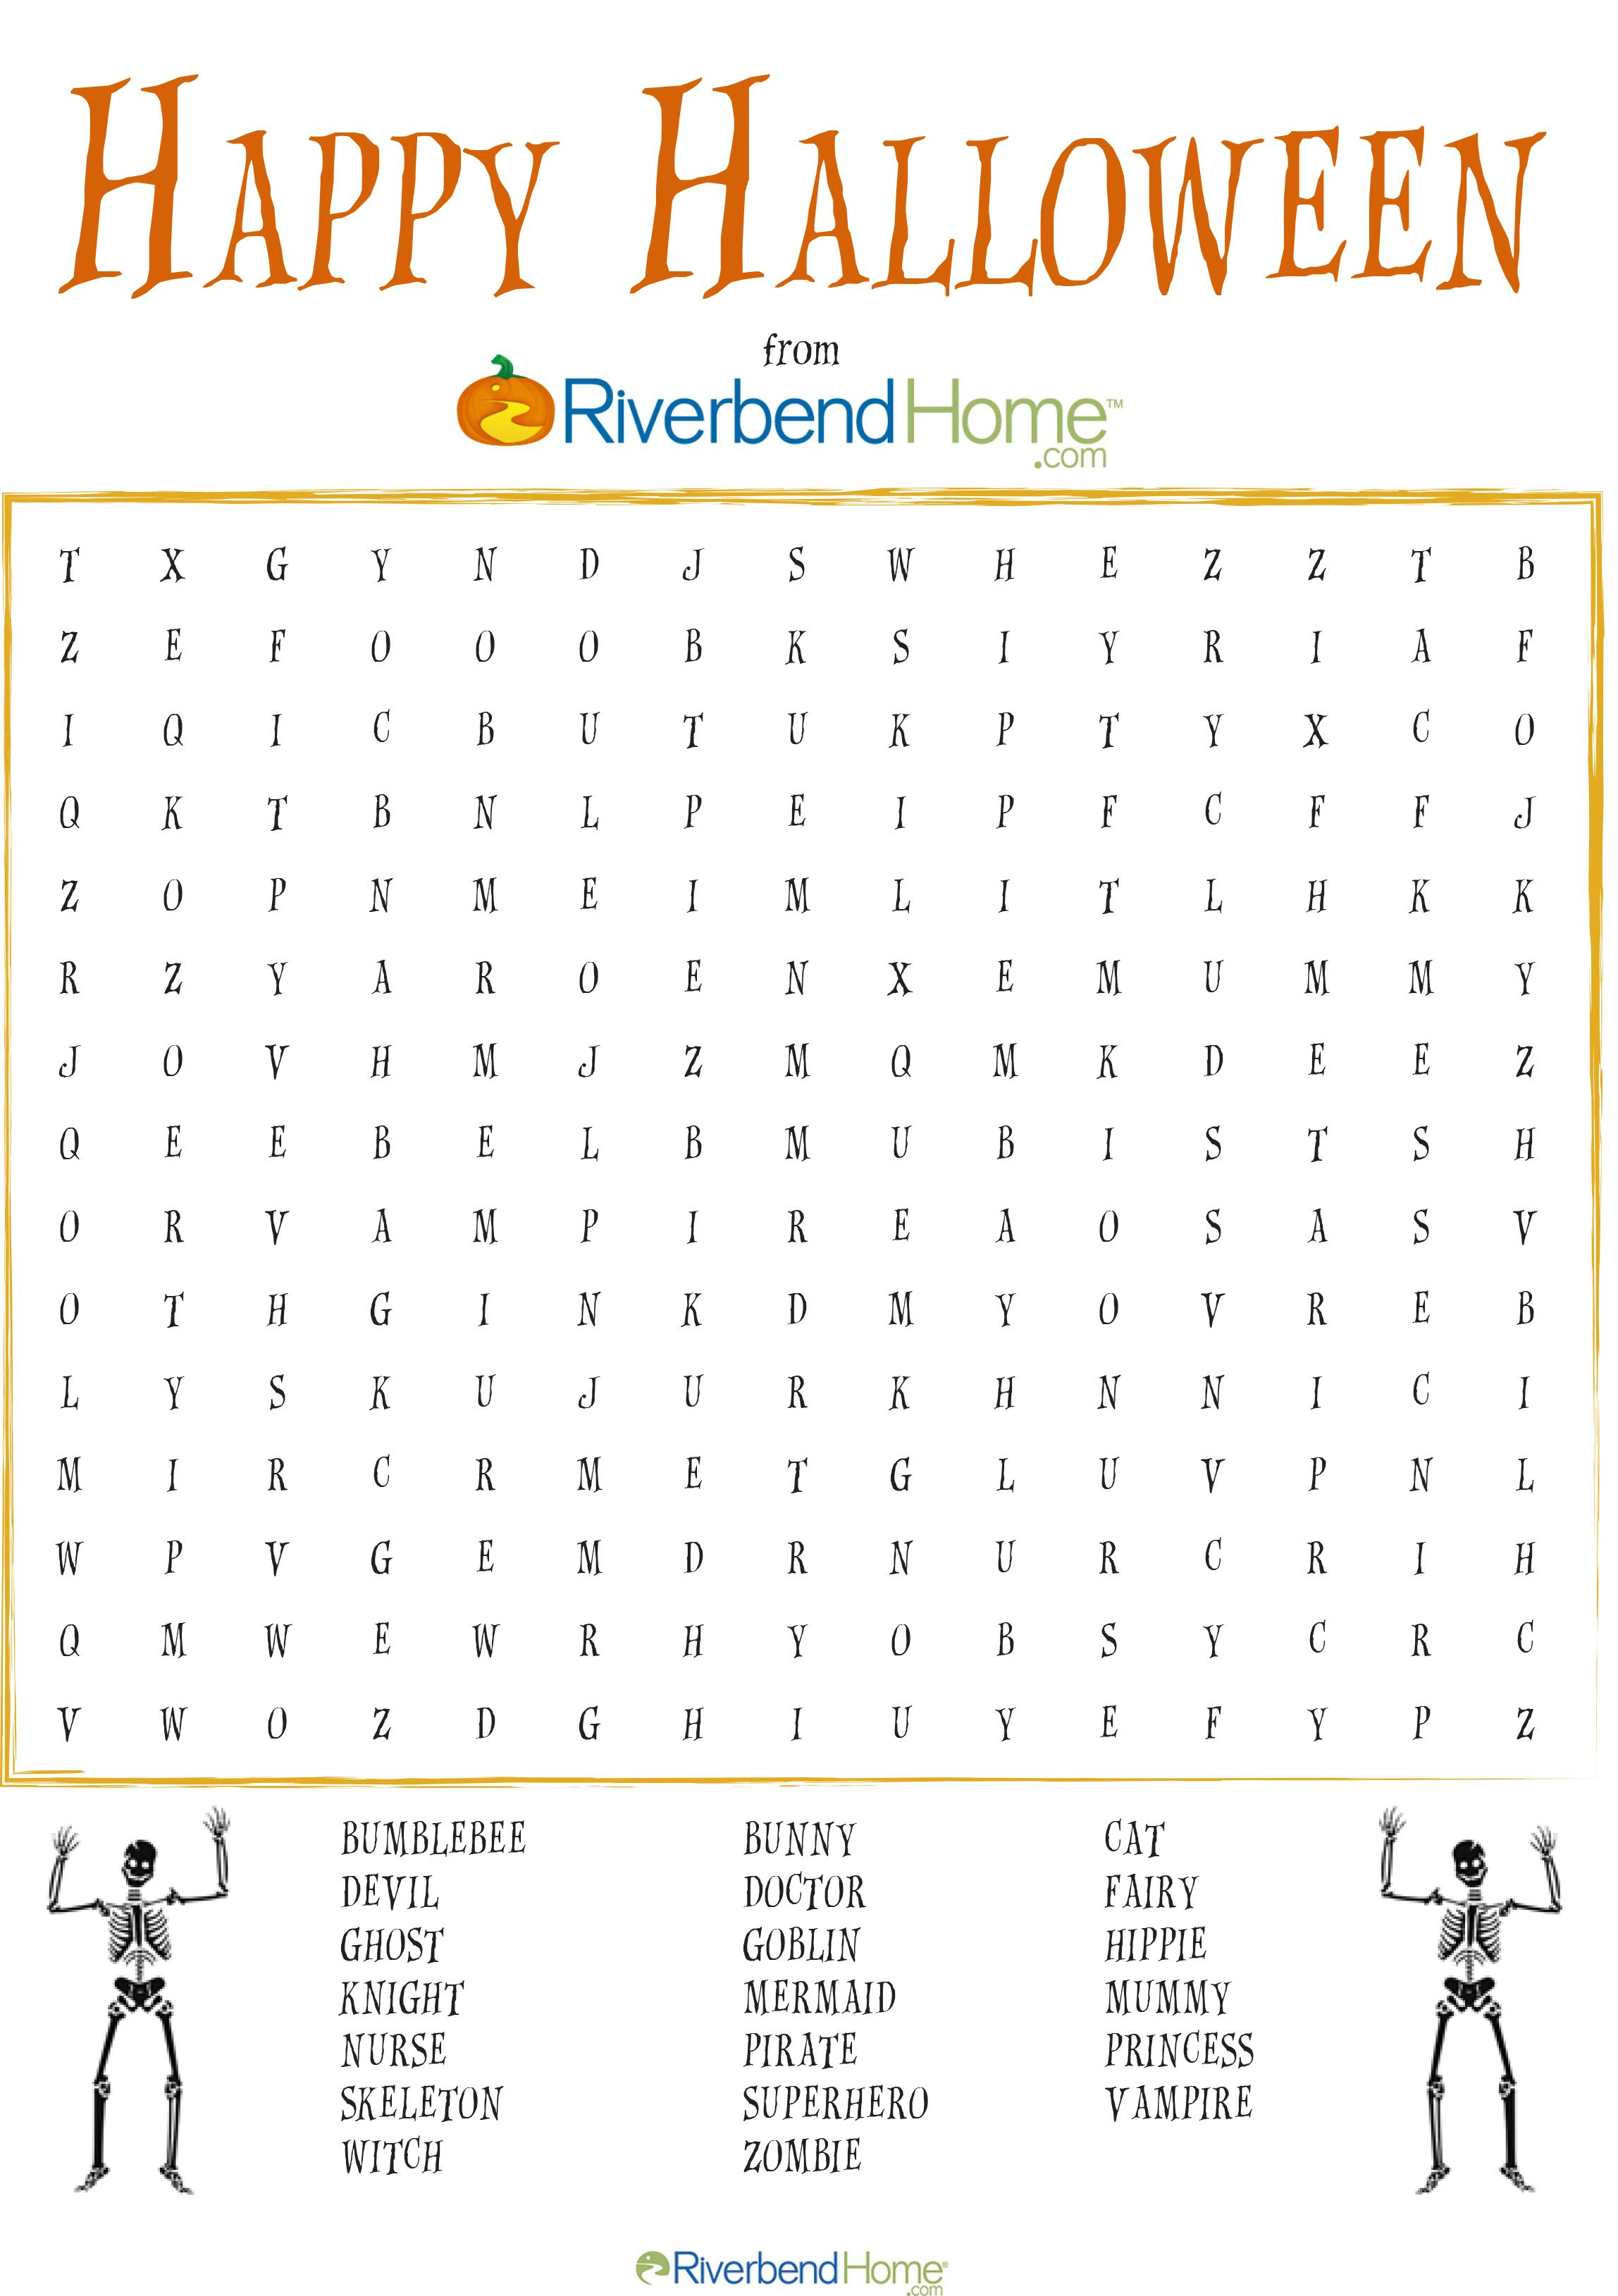 Free Printable Halloween Word Search Puzzle | Halloween | Halloween - Printable Halloween Puzzle